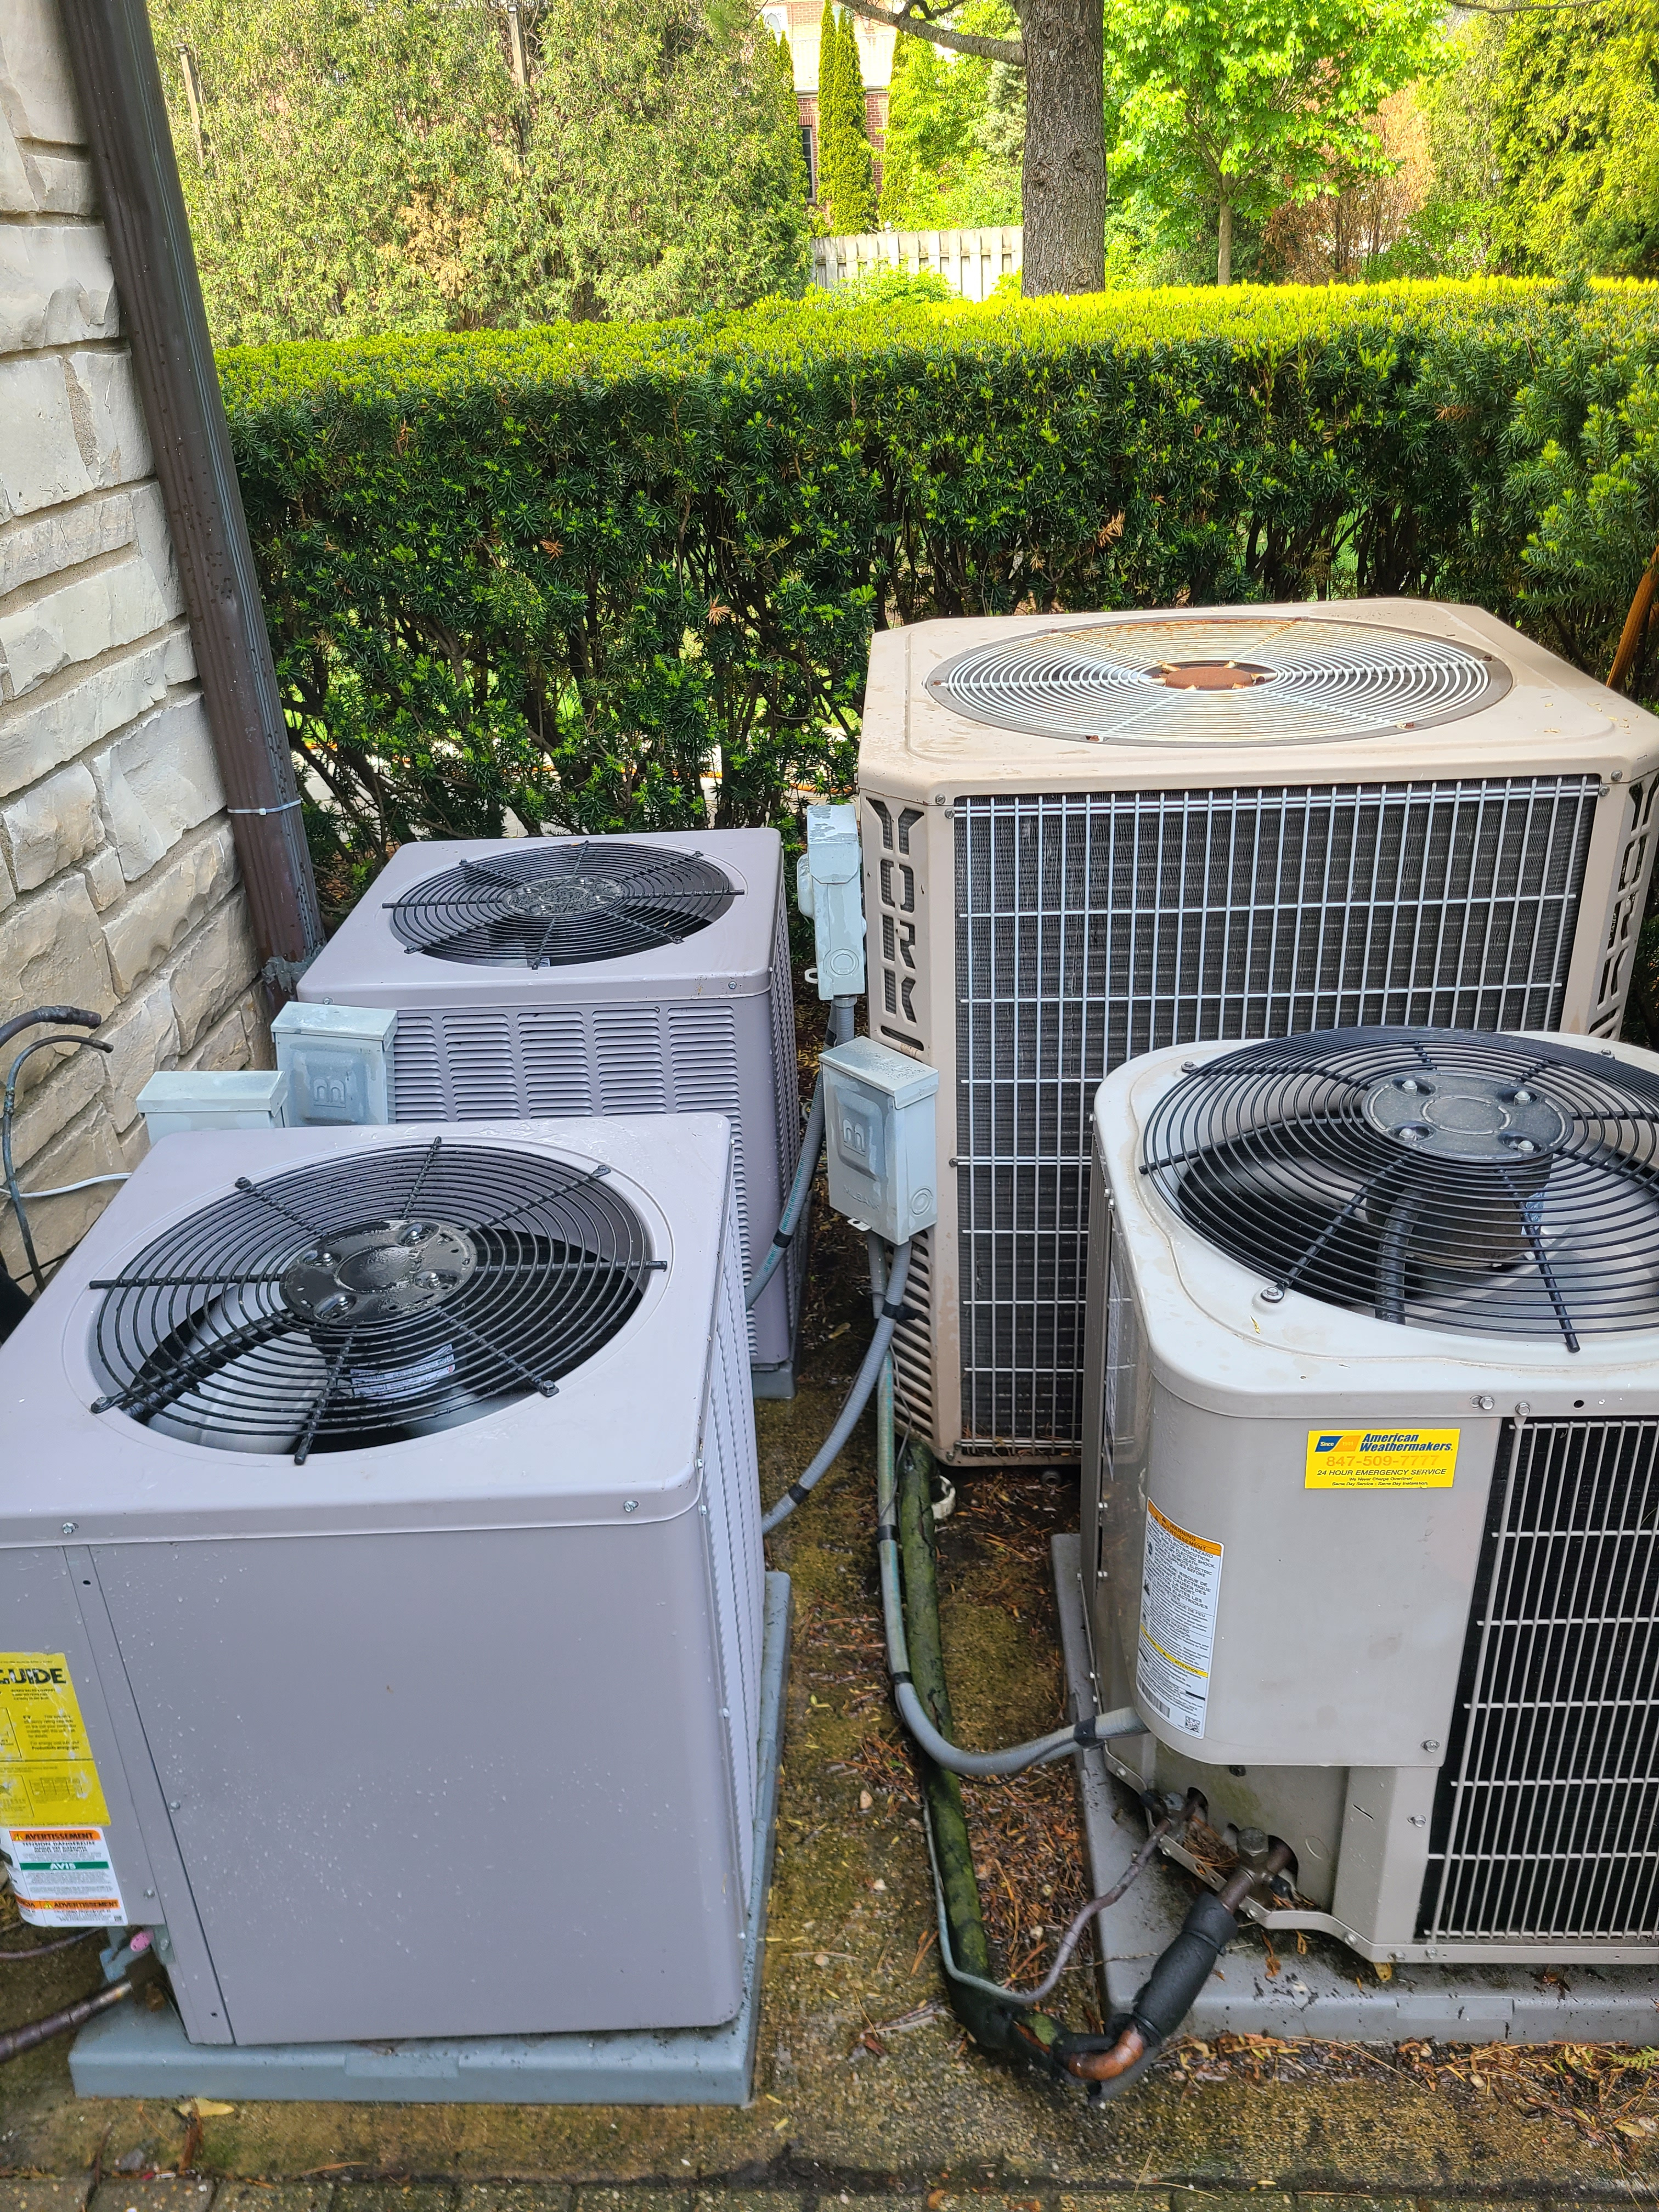 4units serviced ...2 needed refrigerant 1needed minor wiring issues addressed...cleaned and ready for spring/ summer operation